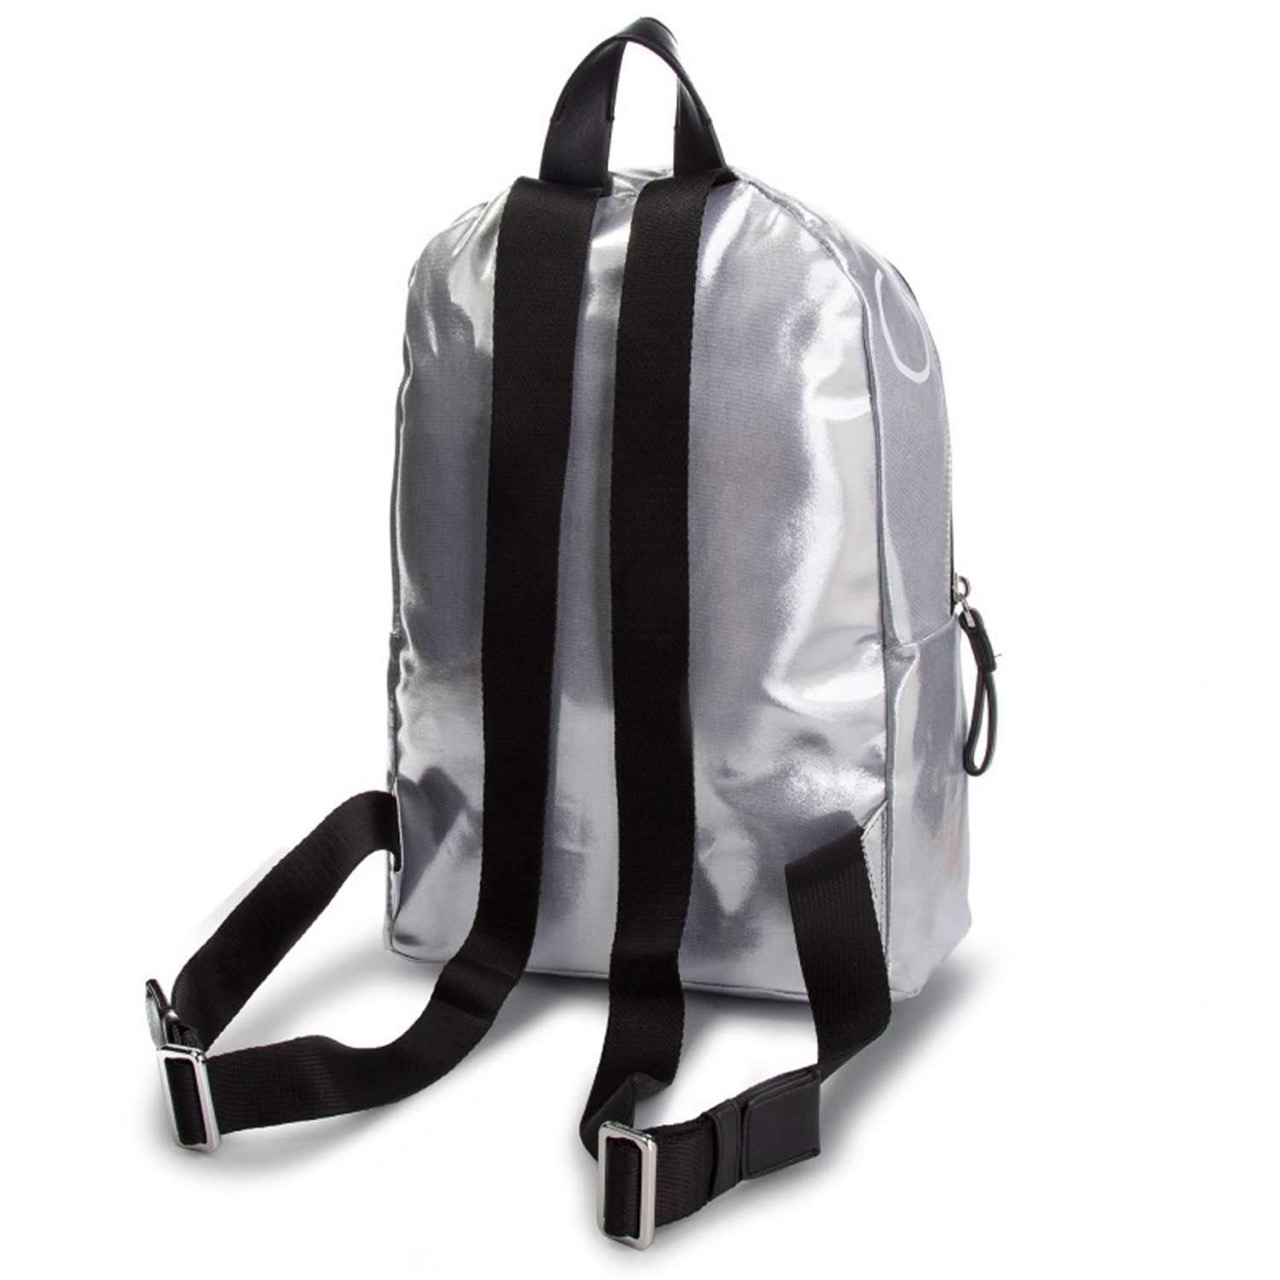 759d99aa3f5 CALVIN KLEIN ck essentials backpack silver Leather goods others ...